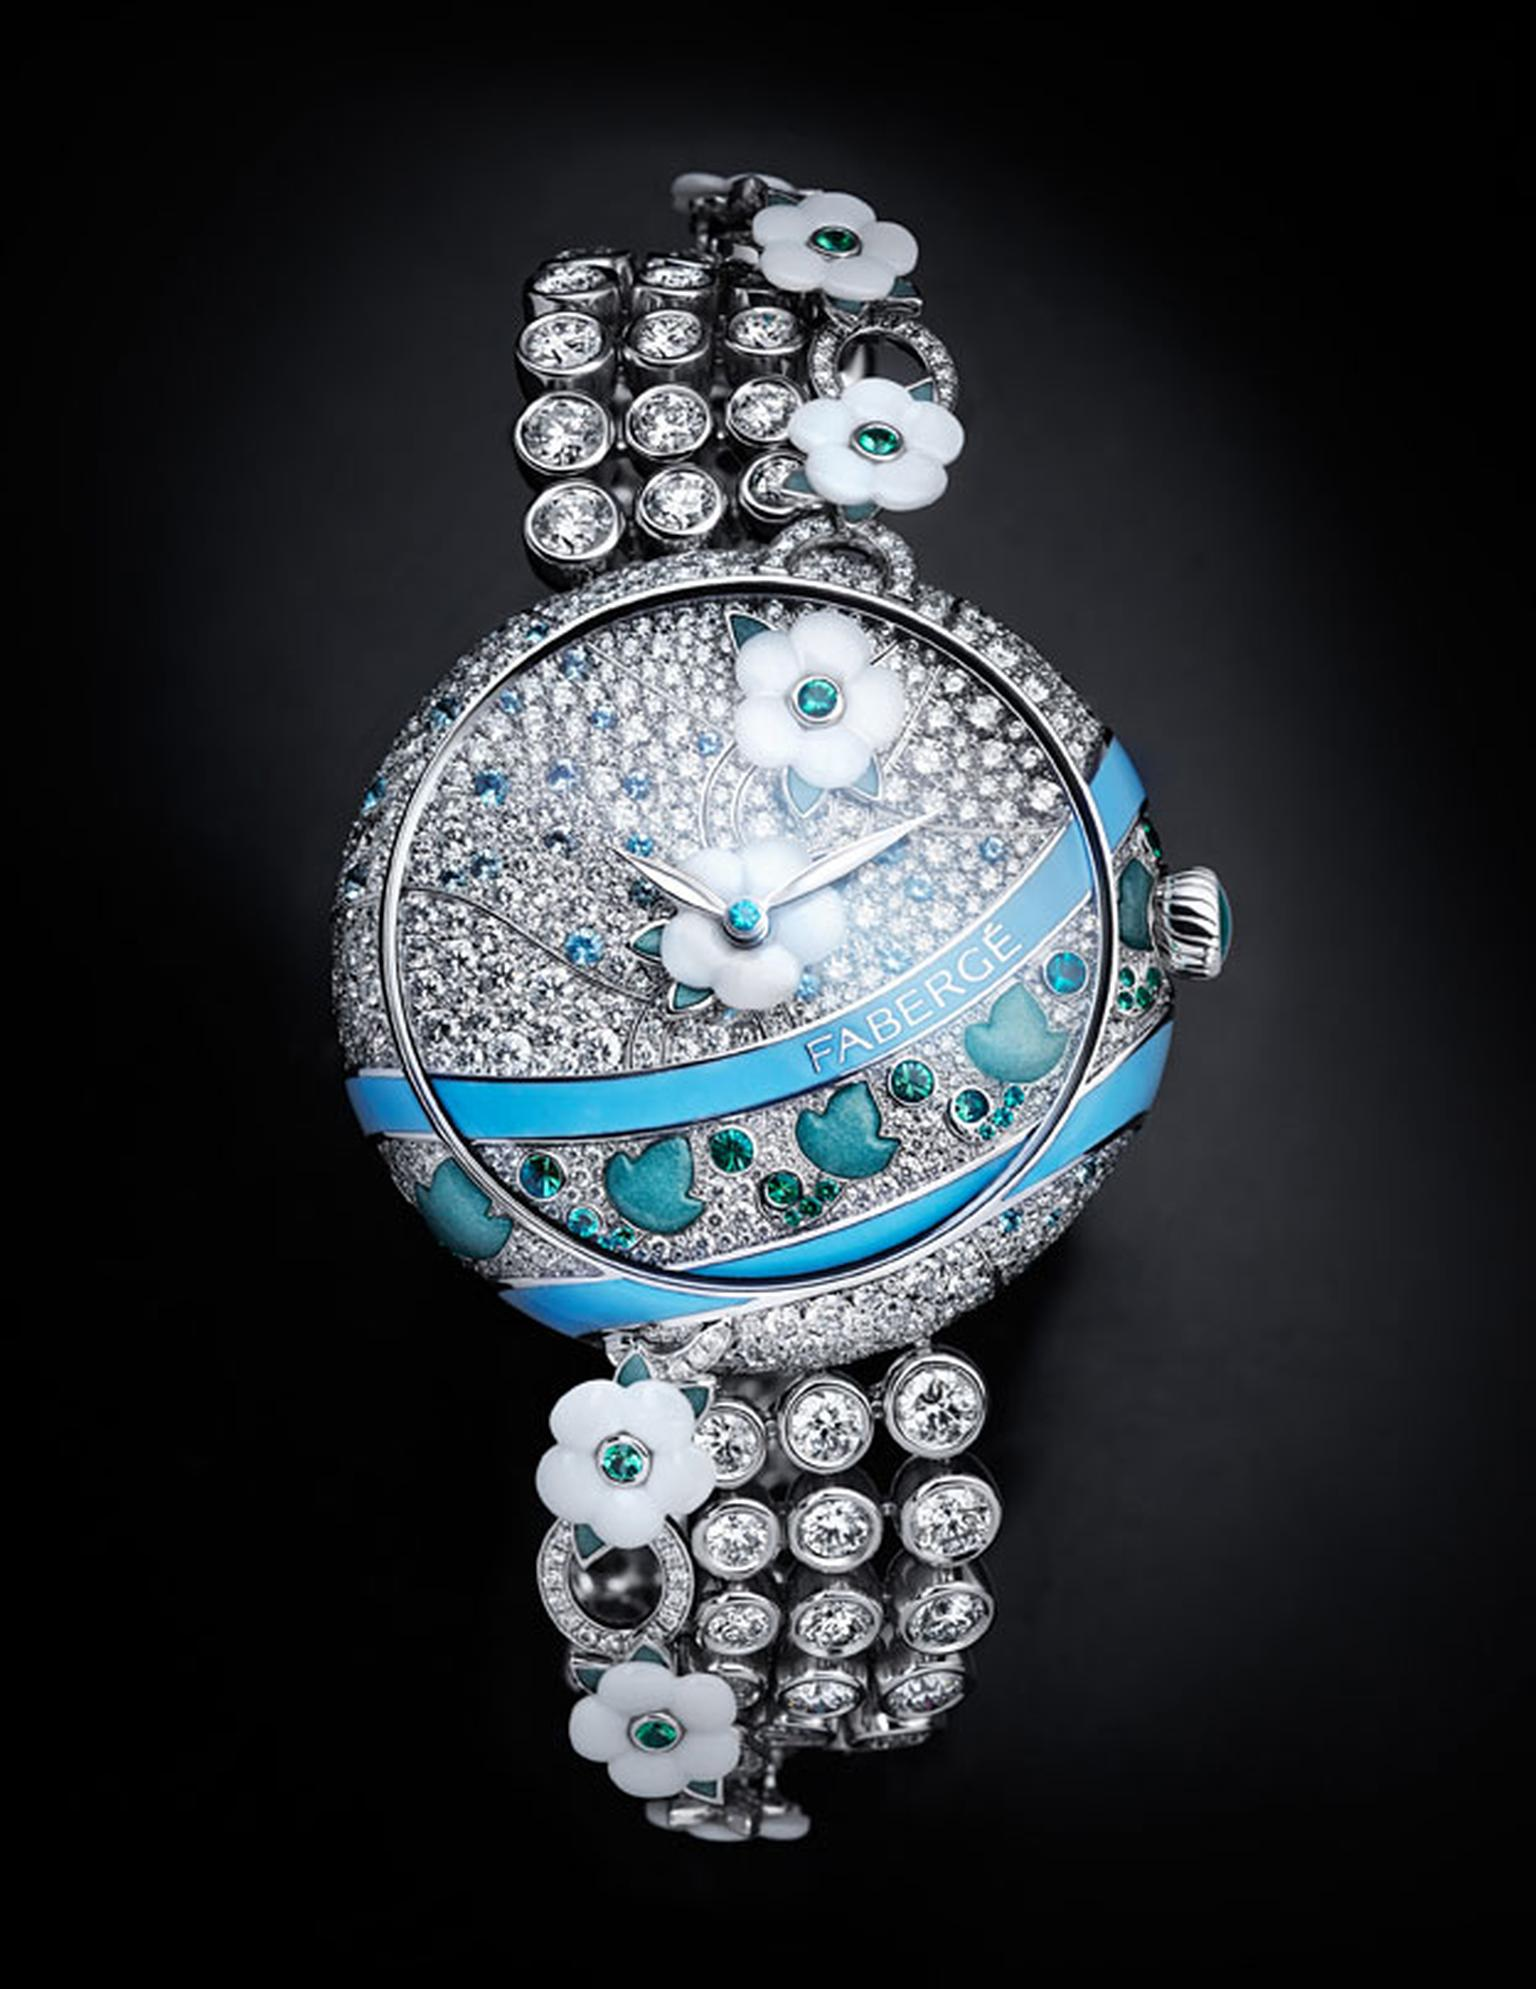 Baselworld-high-jewellery-watches_Faberge-Summer-in-Provence_front.jpg